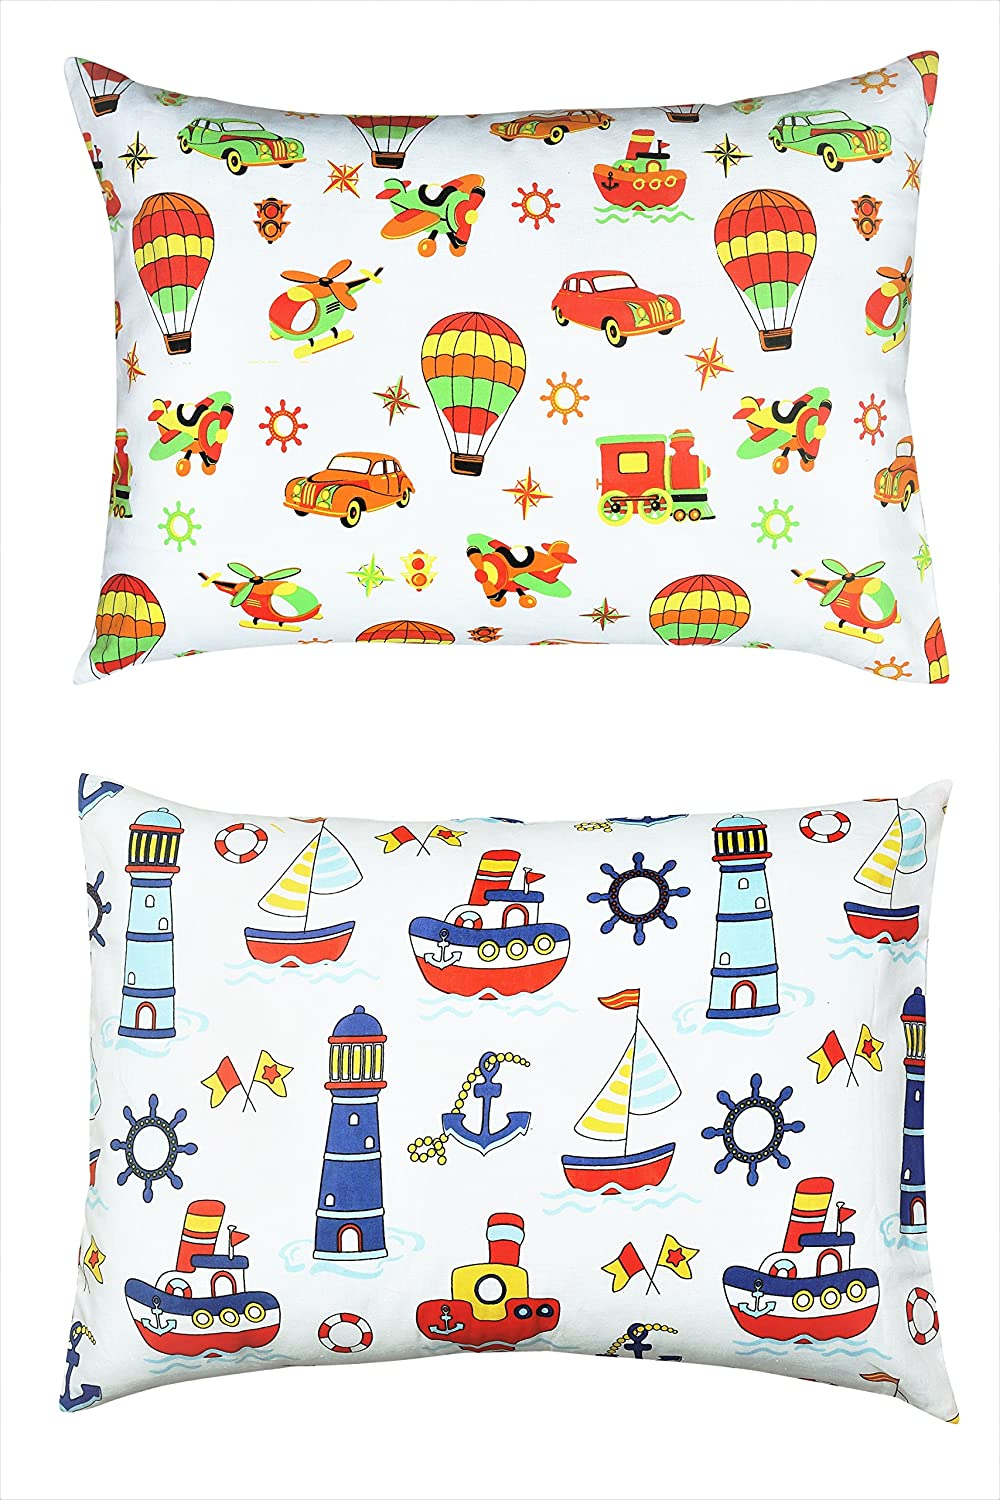 YourEcoFamily Toddler Pillowcases Colorful Girls 2 Pack Soft Comfy Naturally Hypoallergenic 100/% Certified Organic Cotton